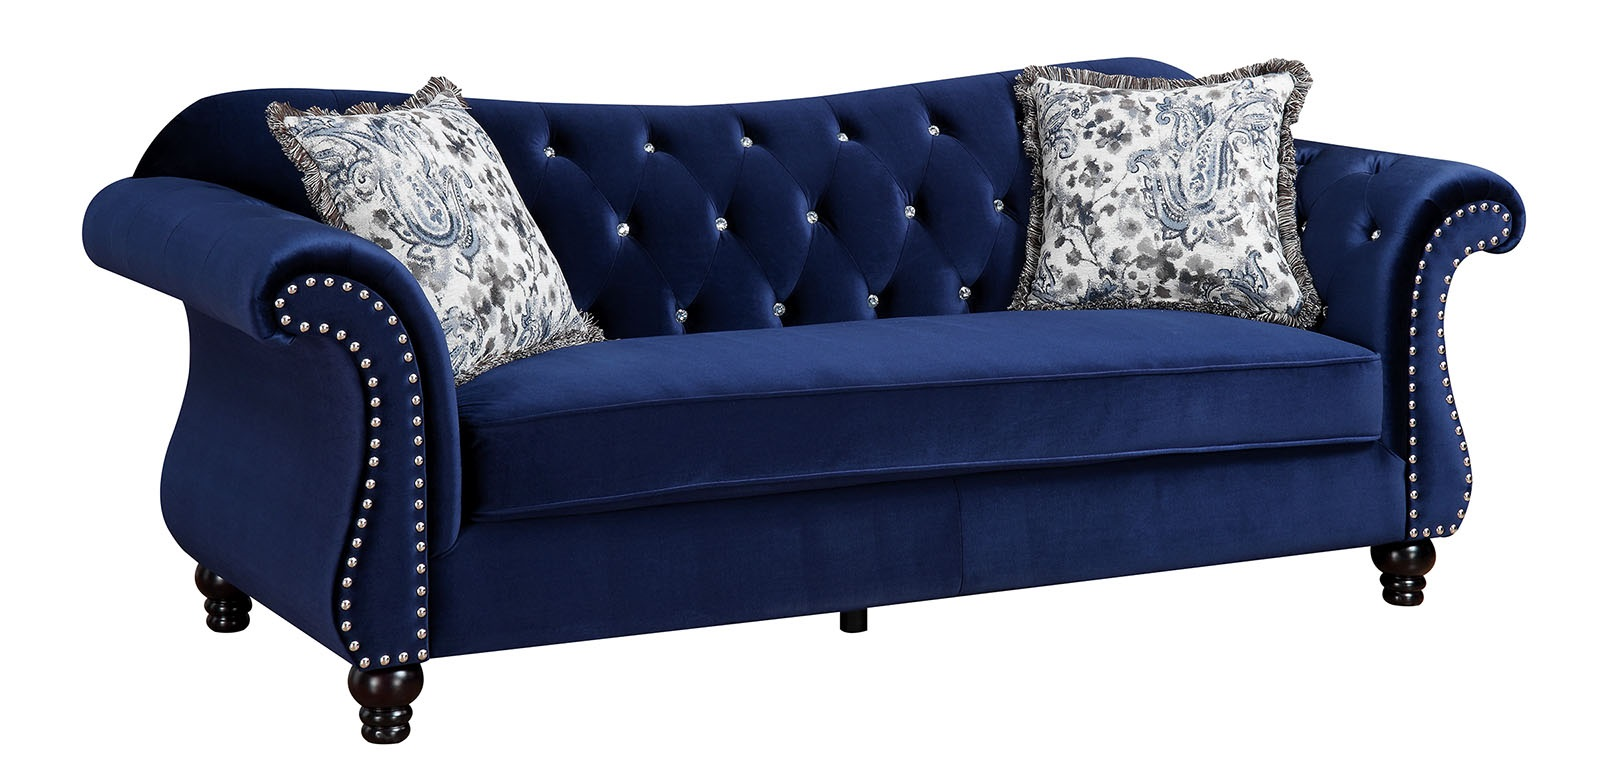 Jolanda tufted blue fabric sofa Loveseats with console